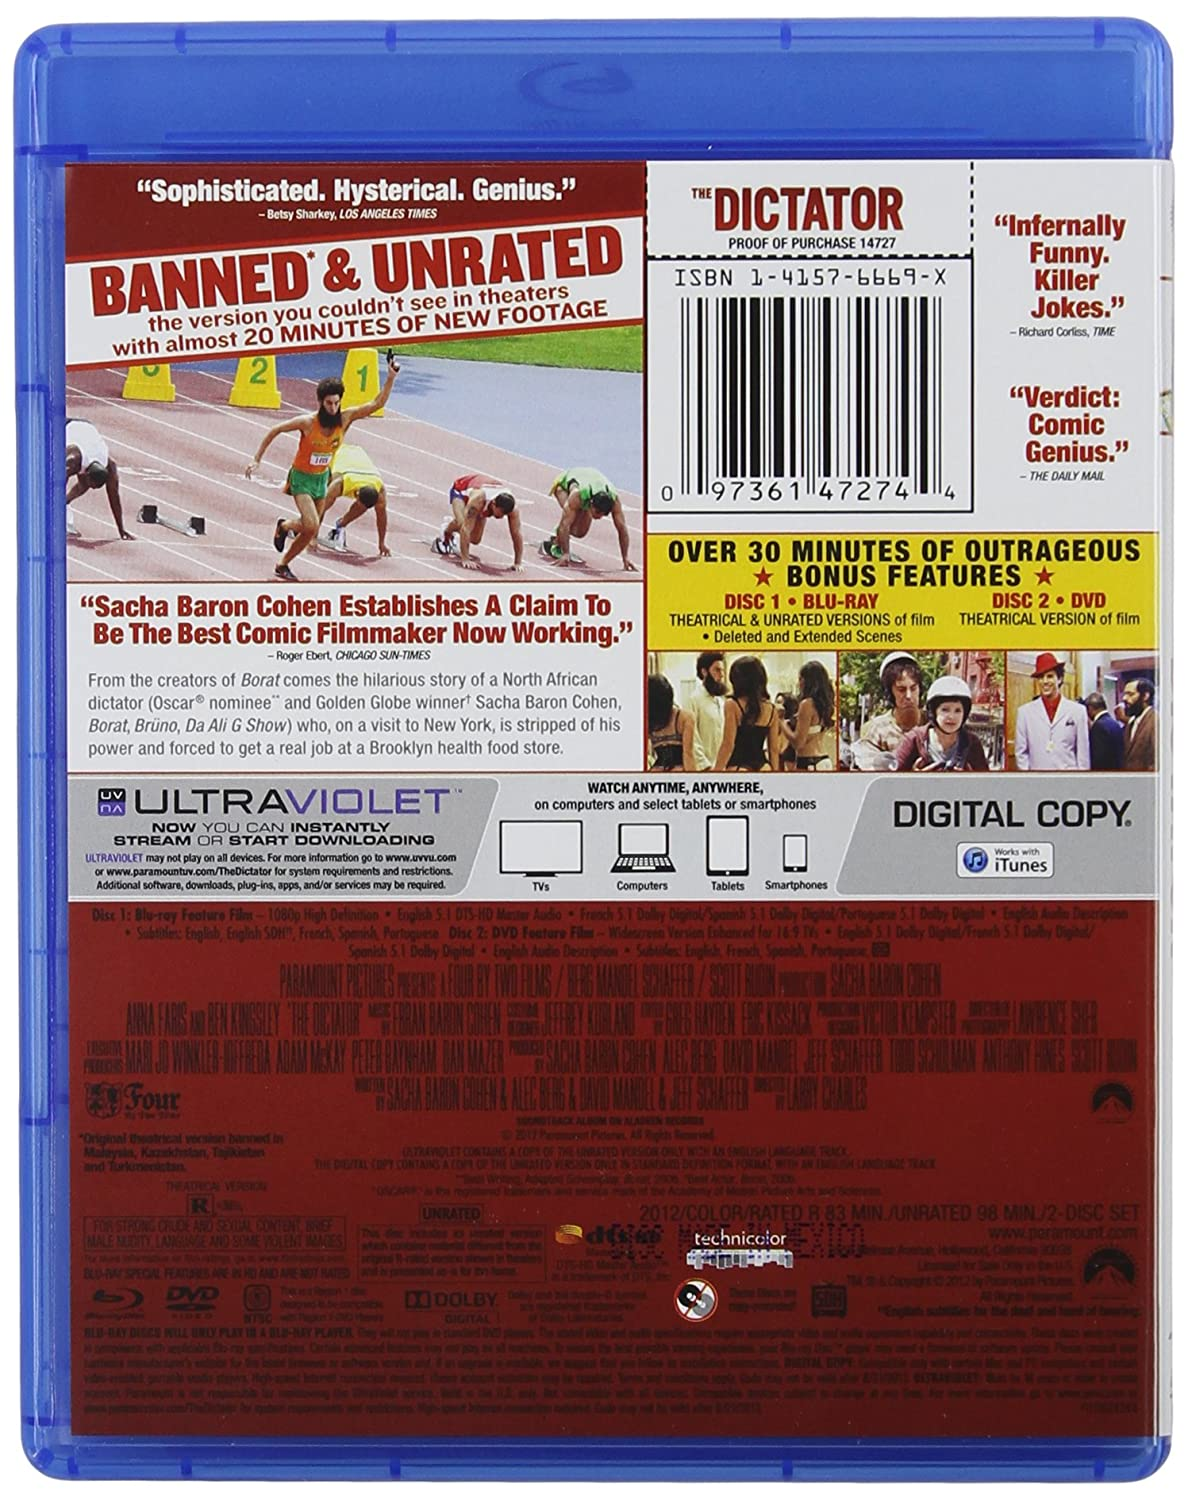 Amazon.com: The Dictator - BANNED & UNRATED Version (Two-disc Blu-ray/DVD Combo + Digital Copy) (2012): Movies & TV